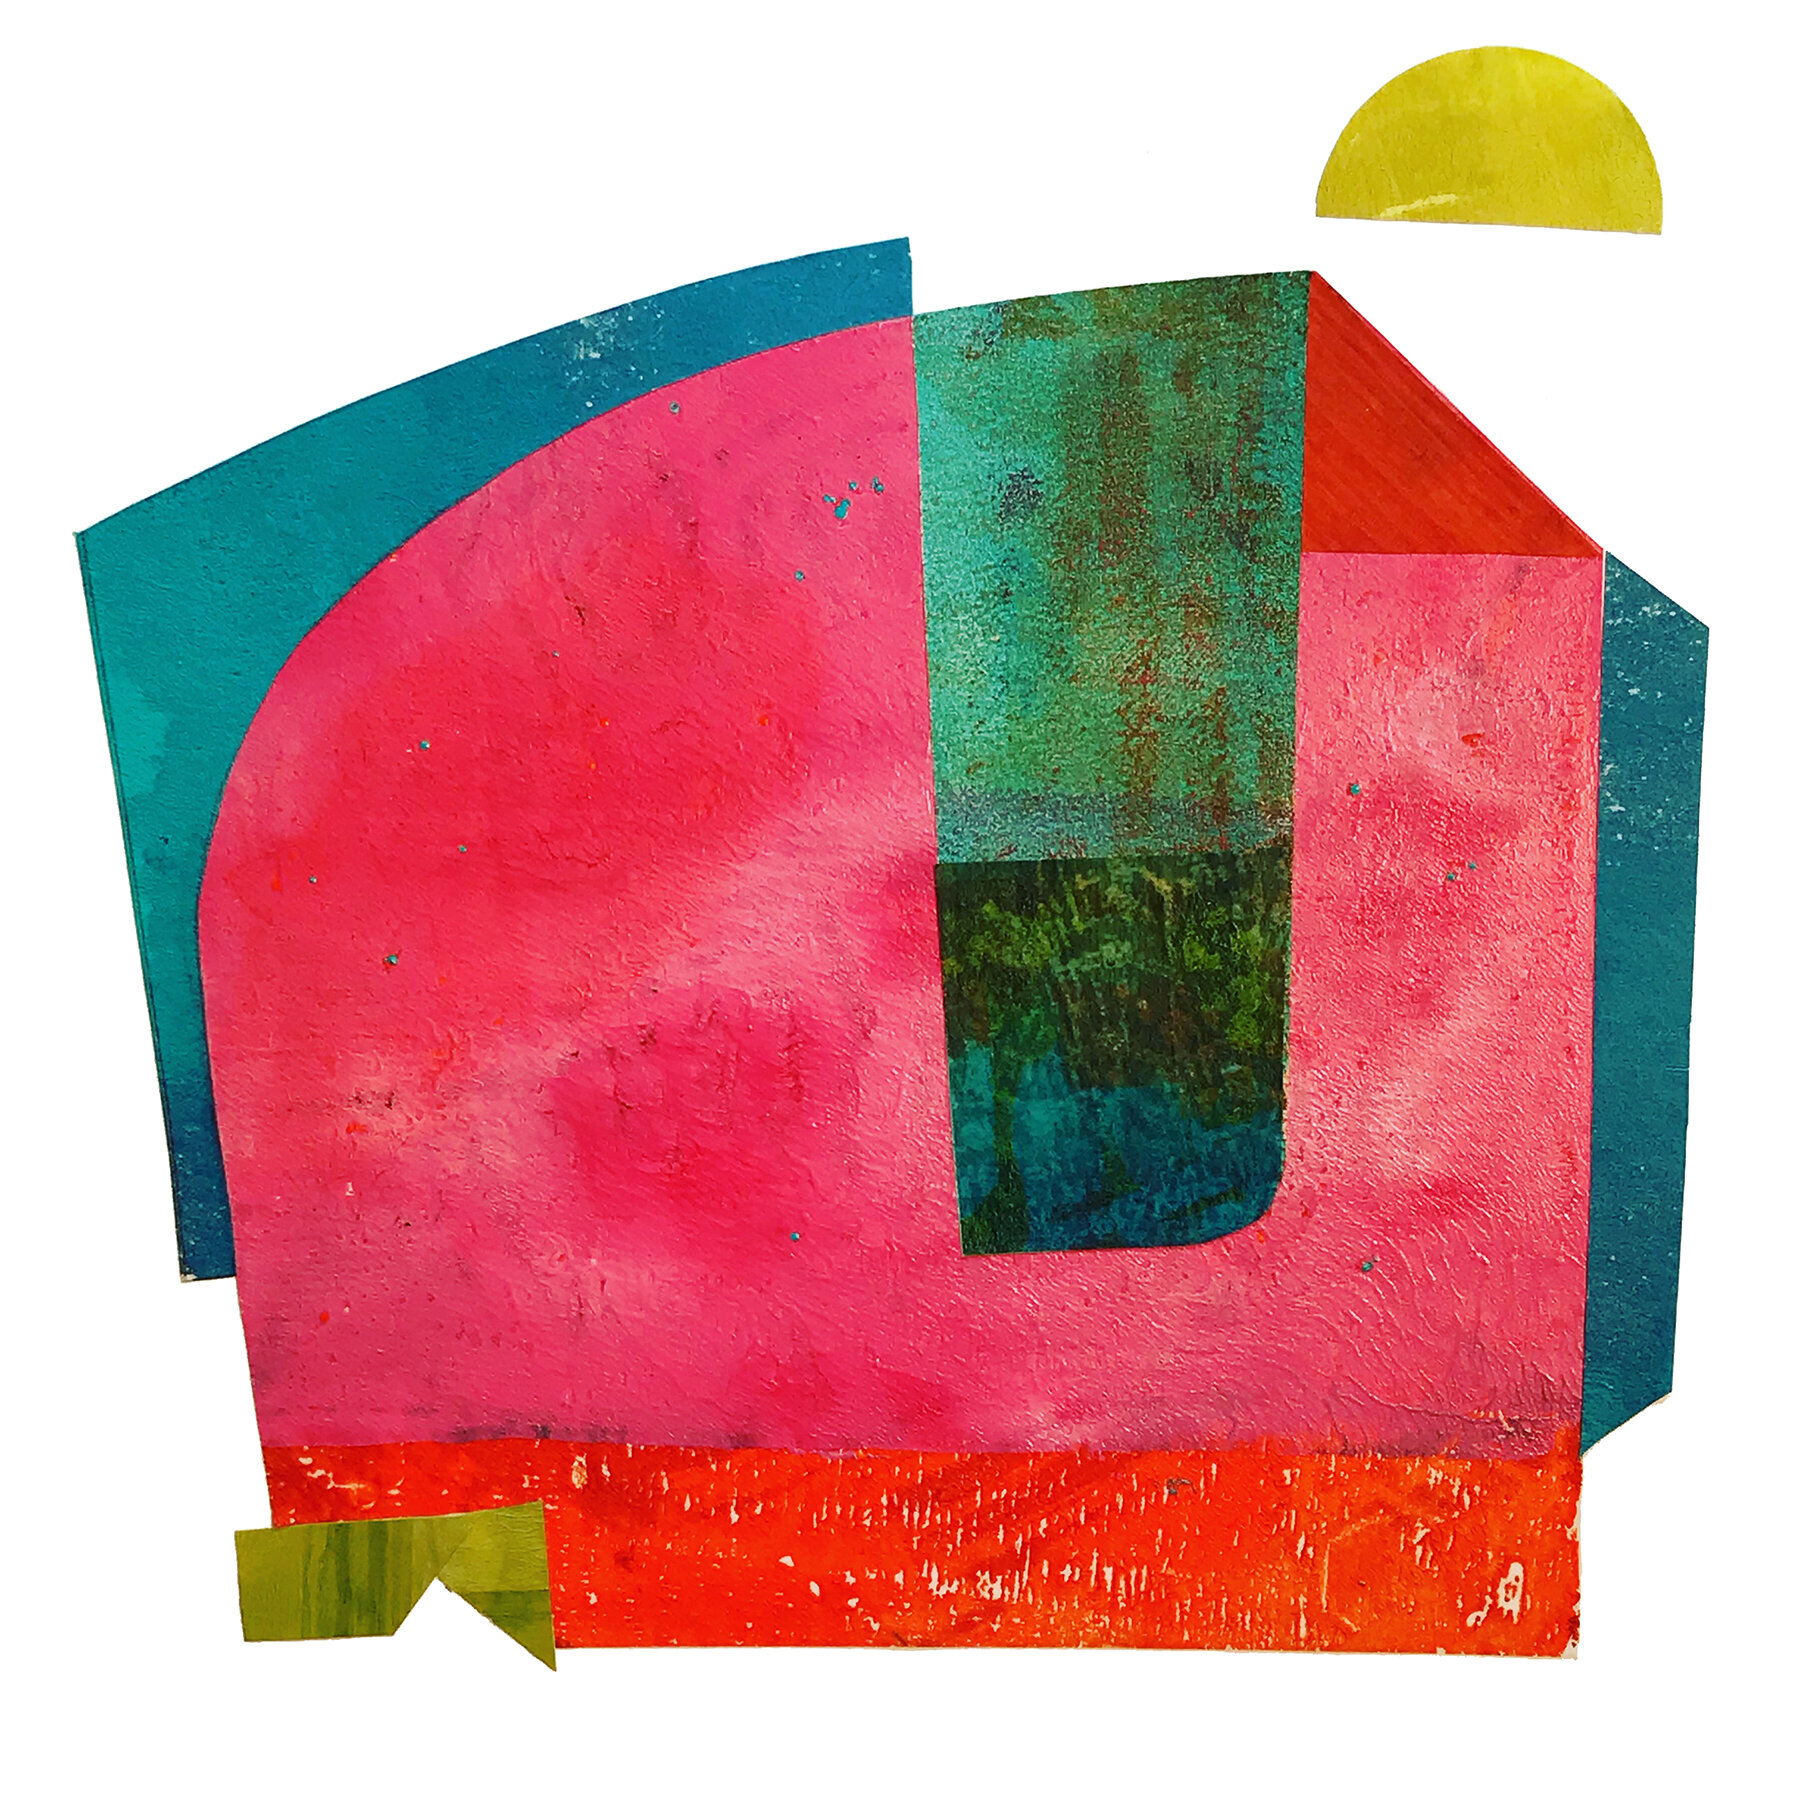 Object Thoughts 11,  monoprint, collage, 13 x 13 inches